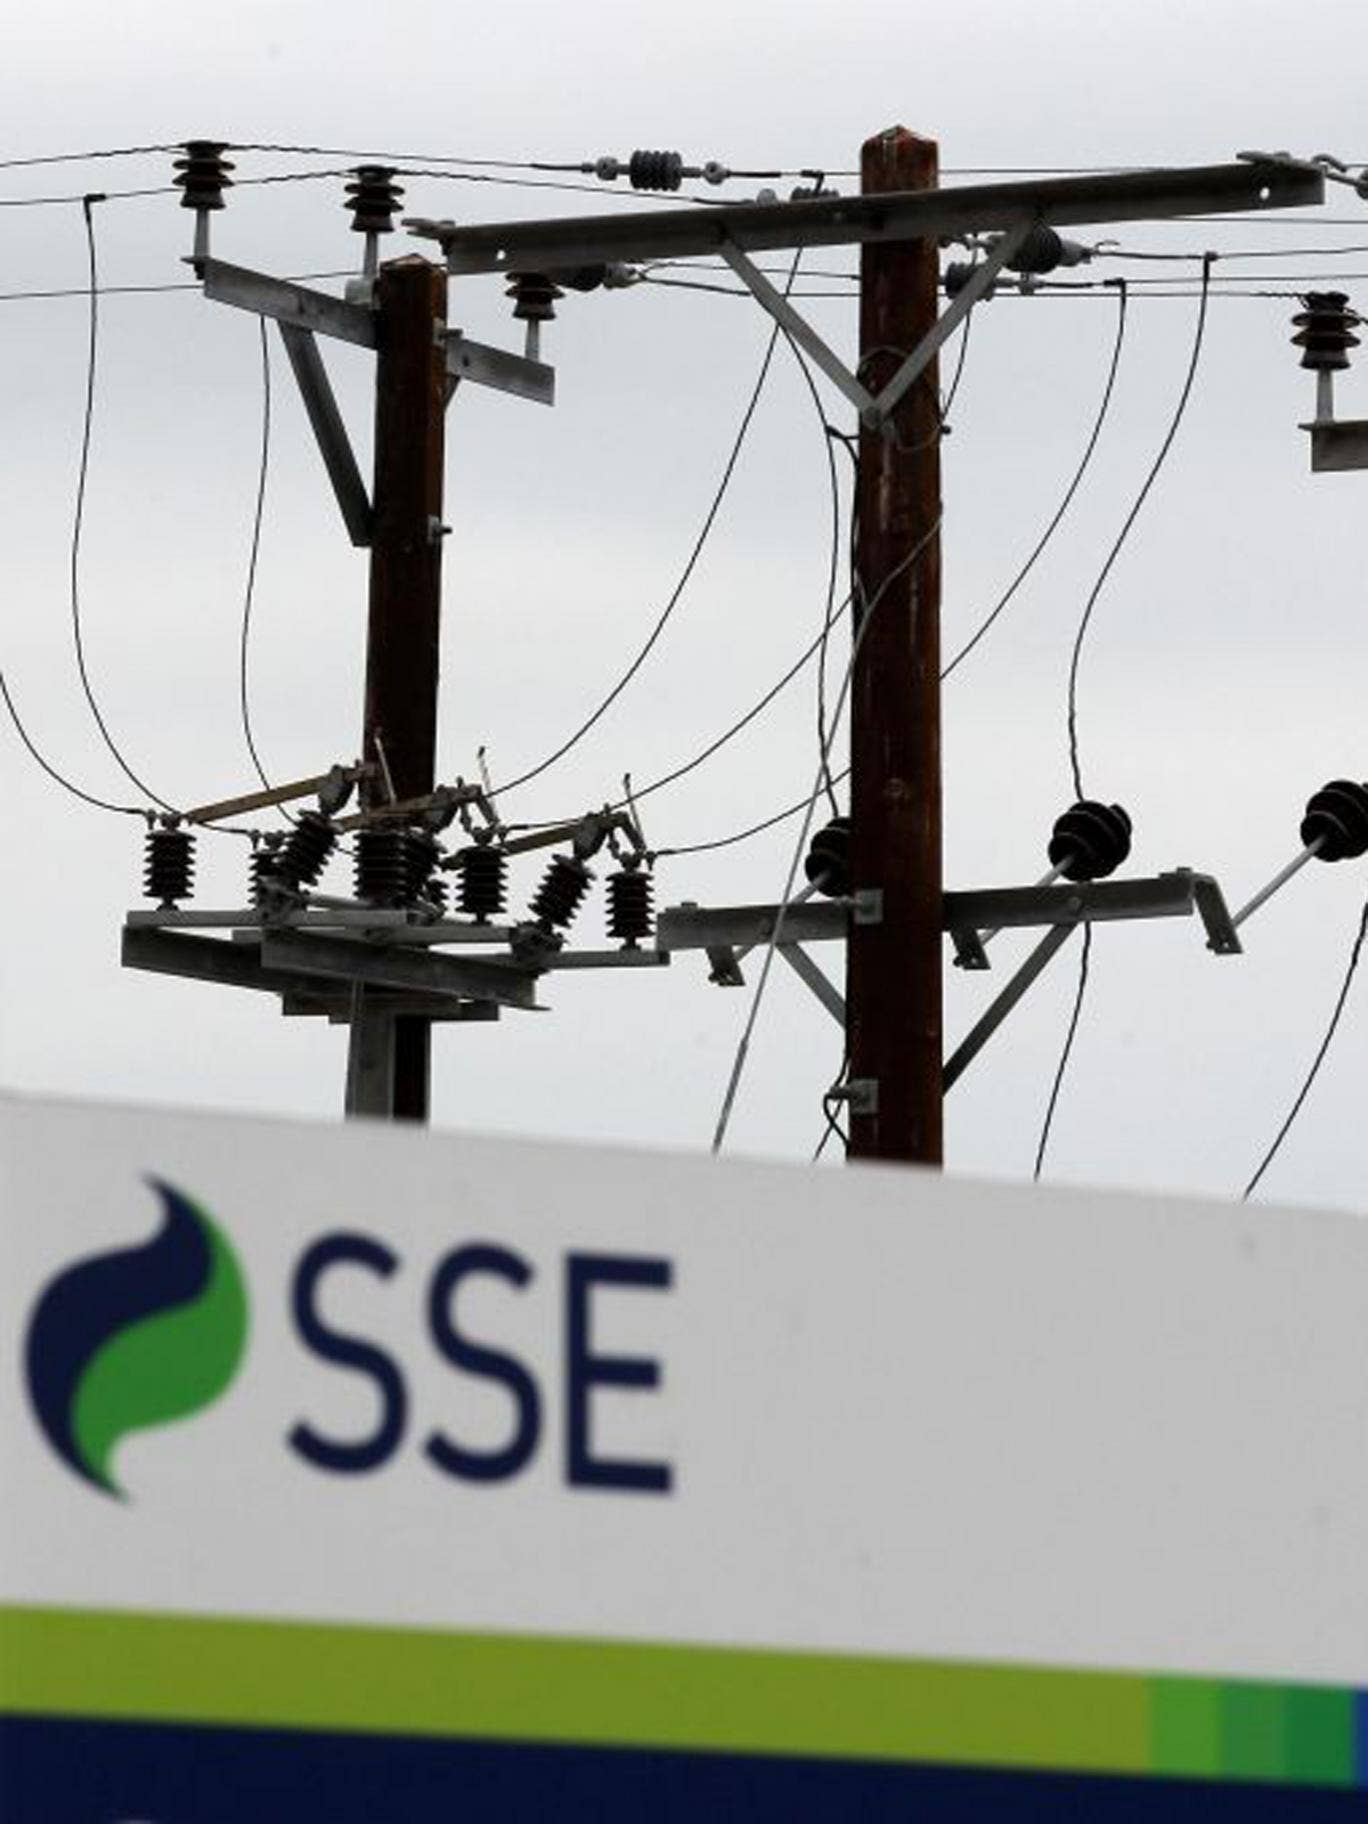 Utility giant SSE is to be fined £10.5 million for 'prolonged and extensive' mis-selling